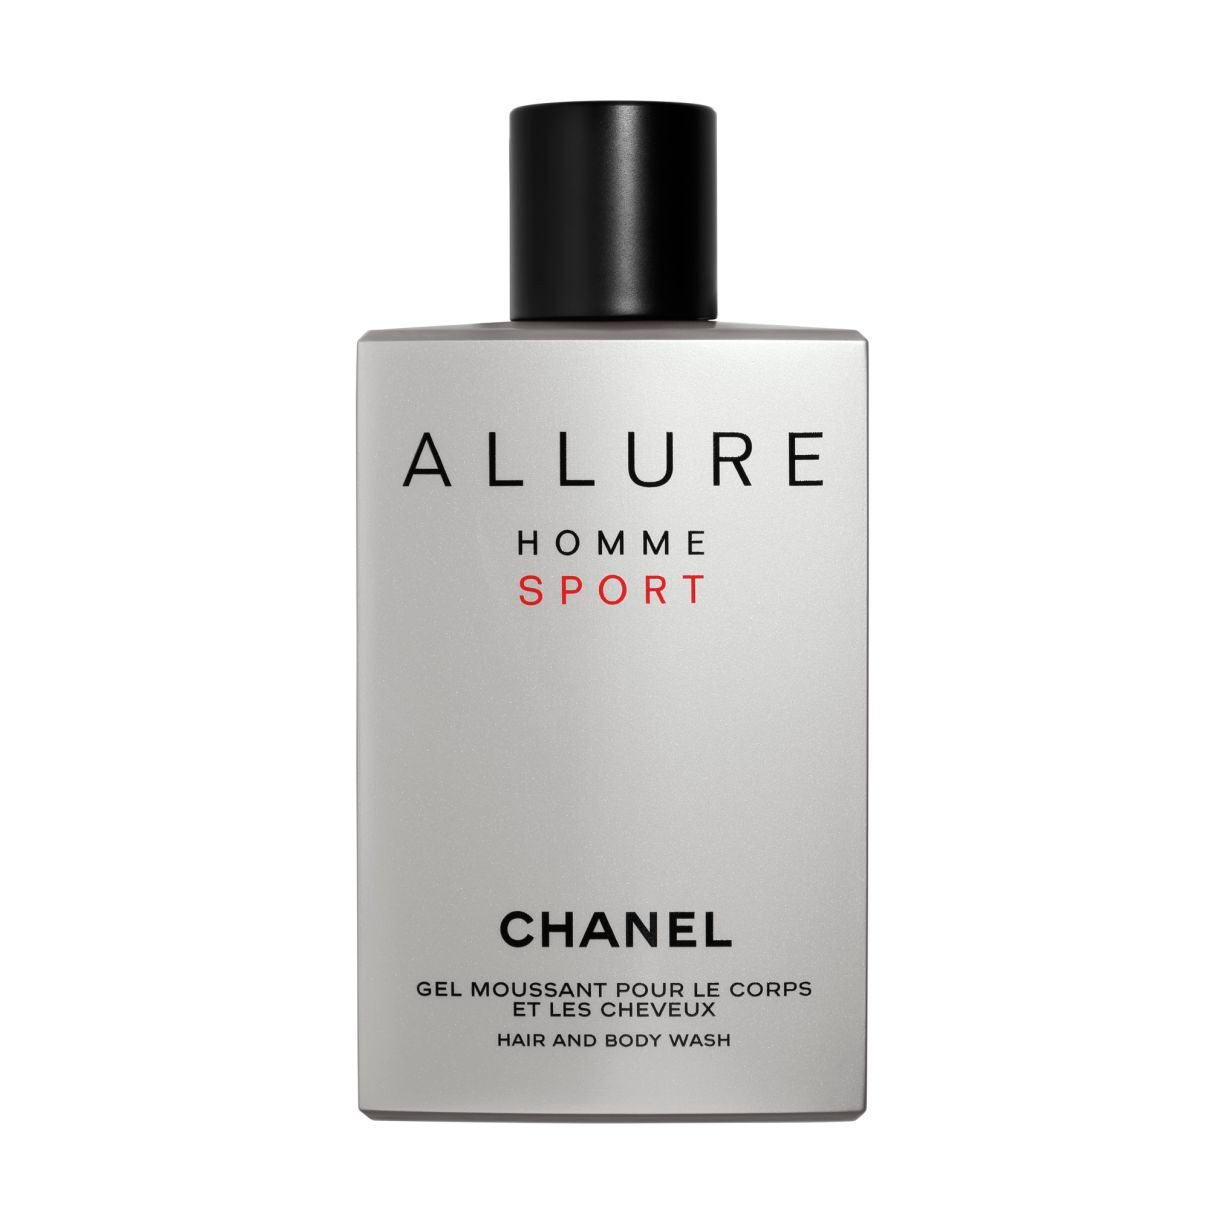 ALLURE HOMME SPORT SHOWER GEL - เจลอาบน้ำ